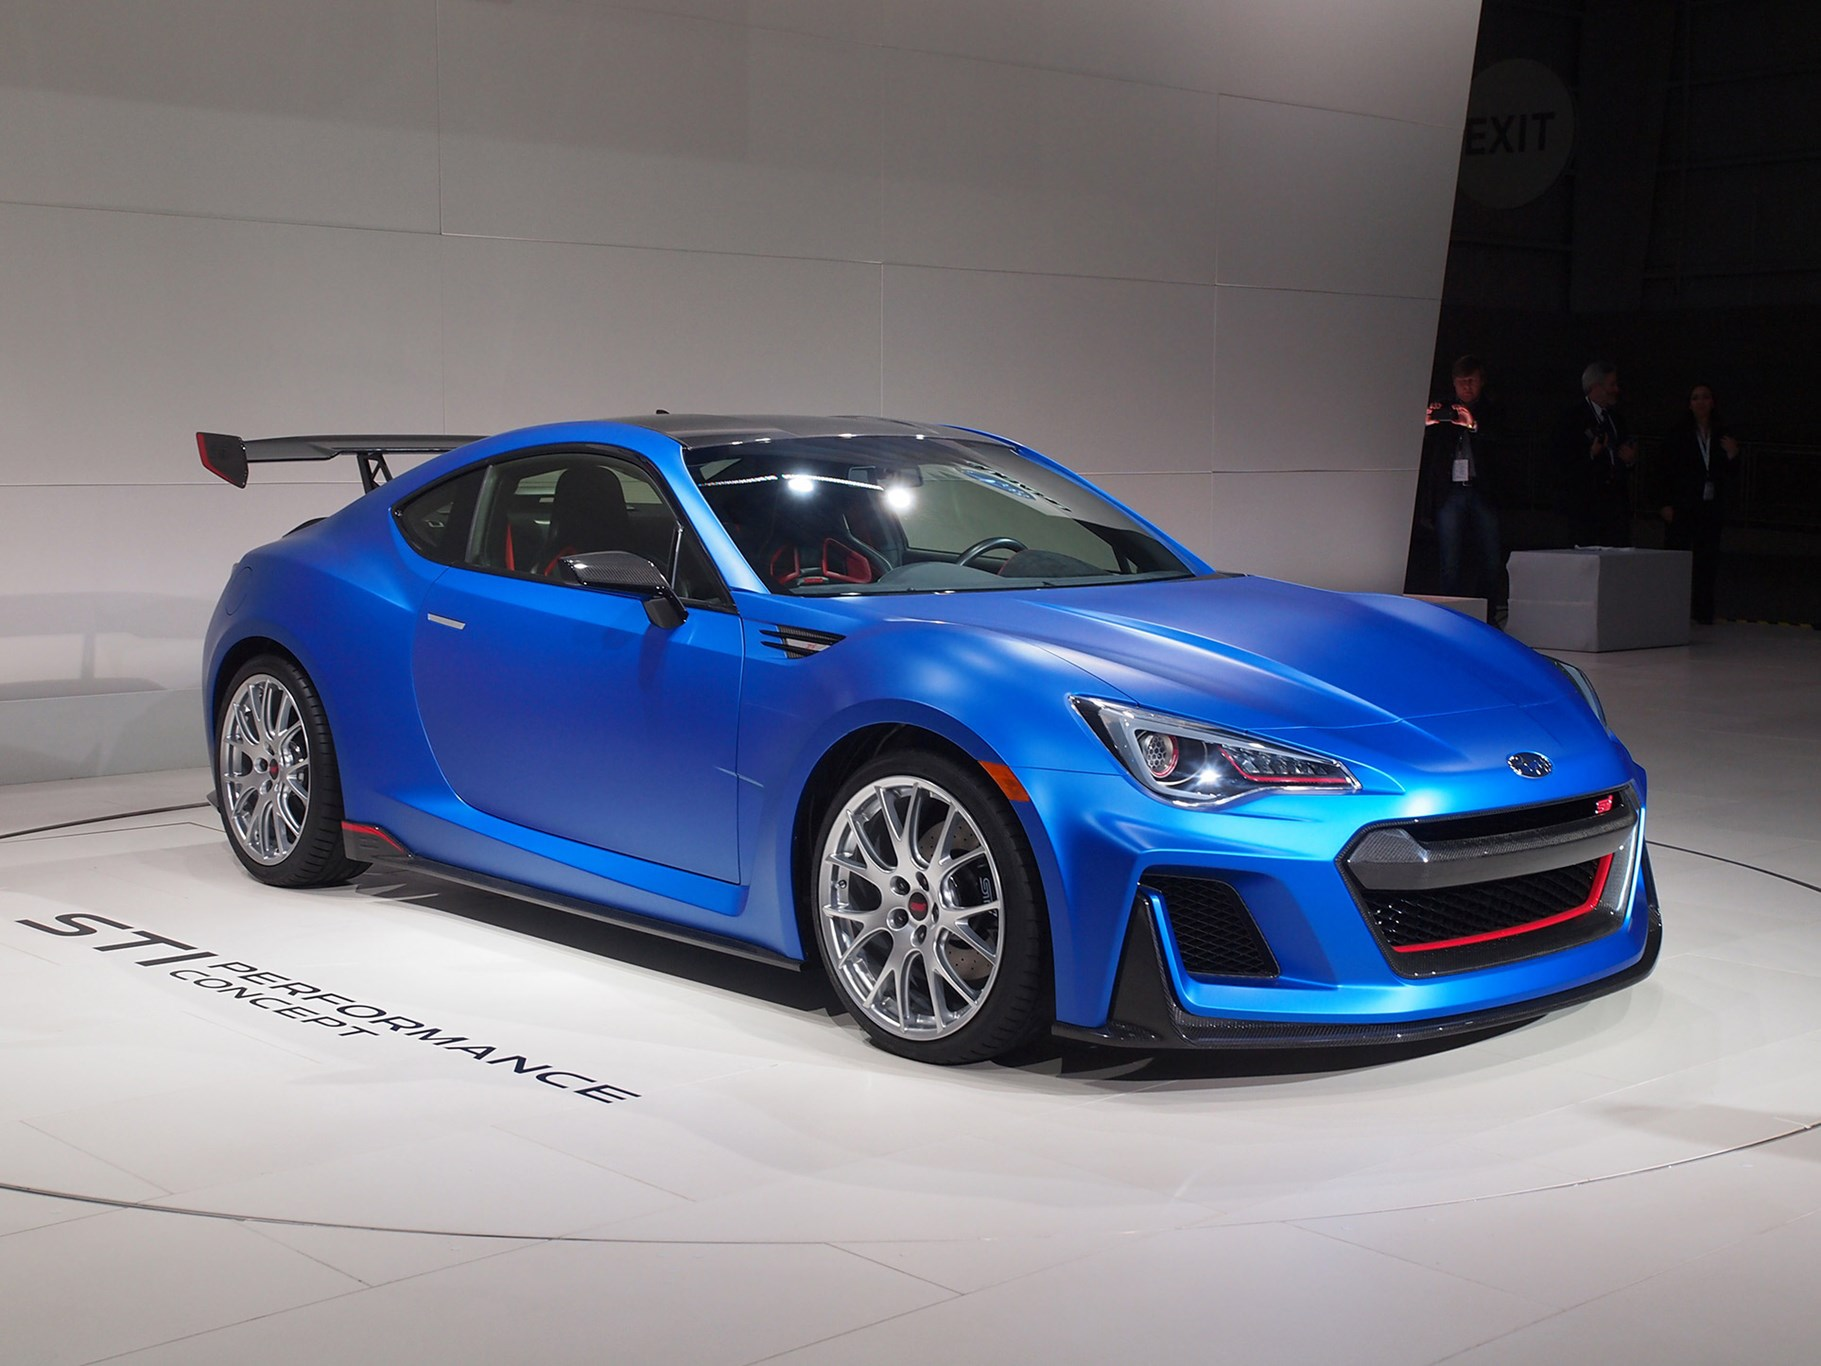 Subaru Brz By Sti 300bhp Coupe Muscles Into New York